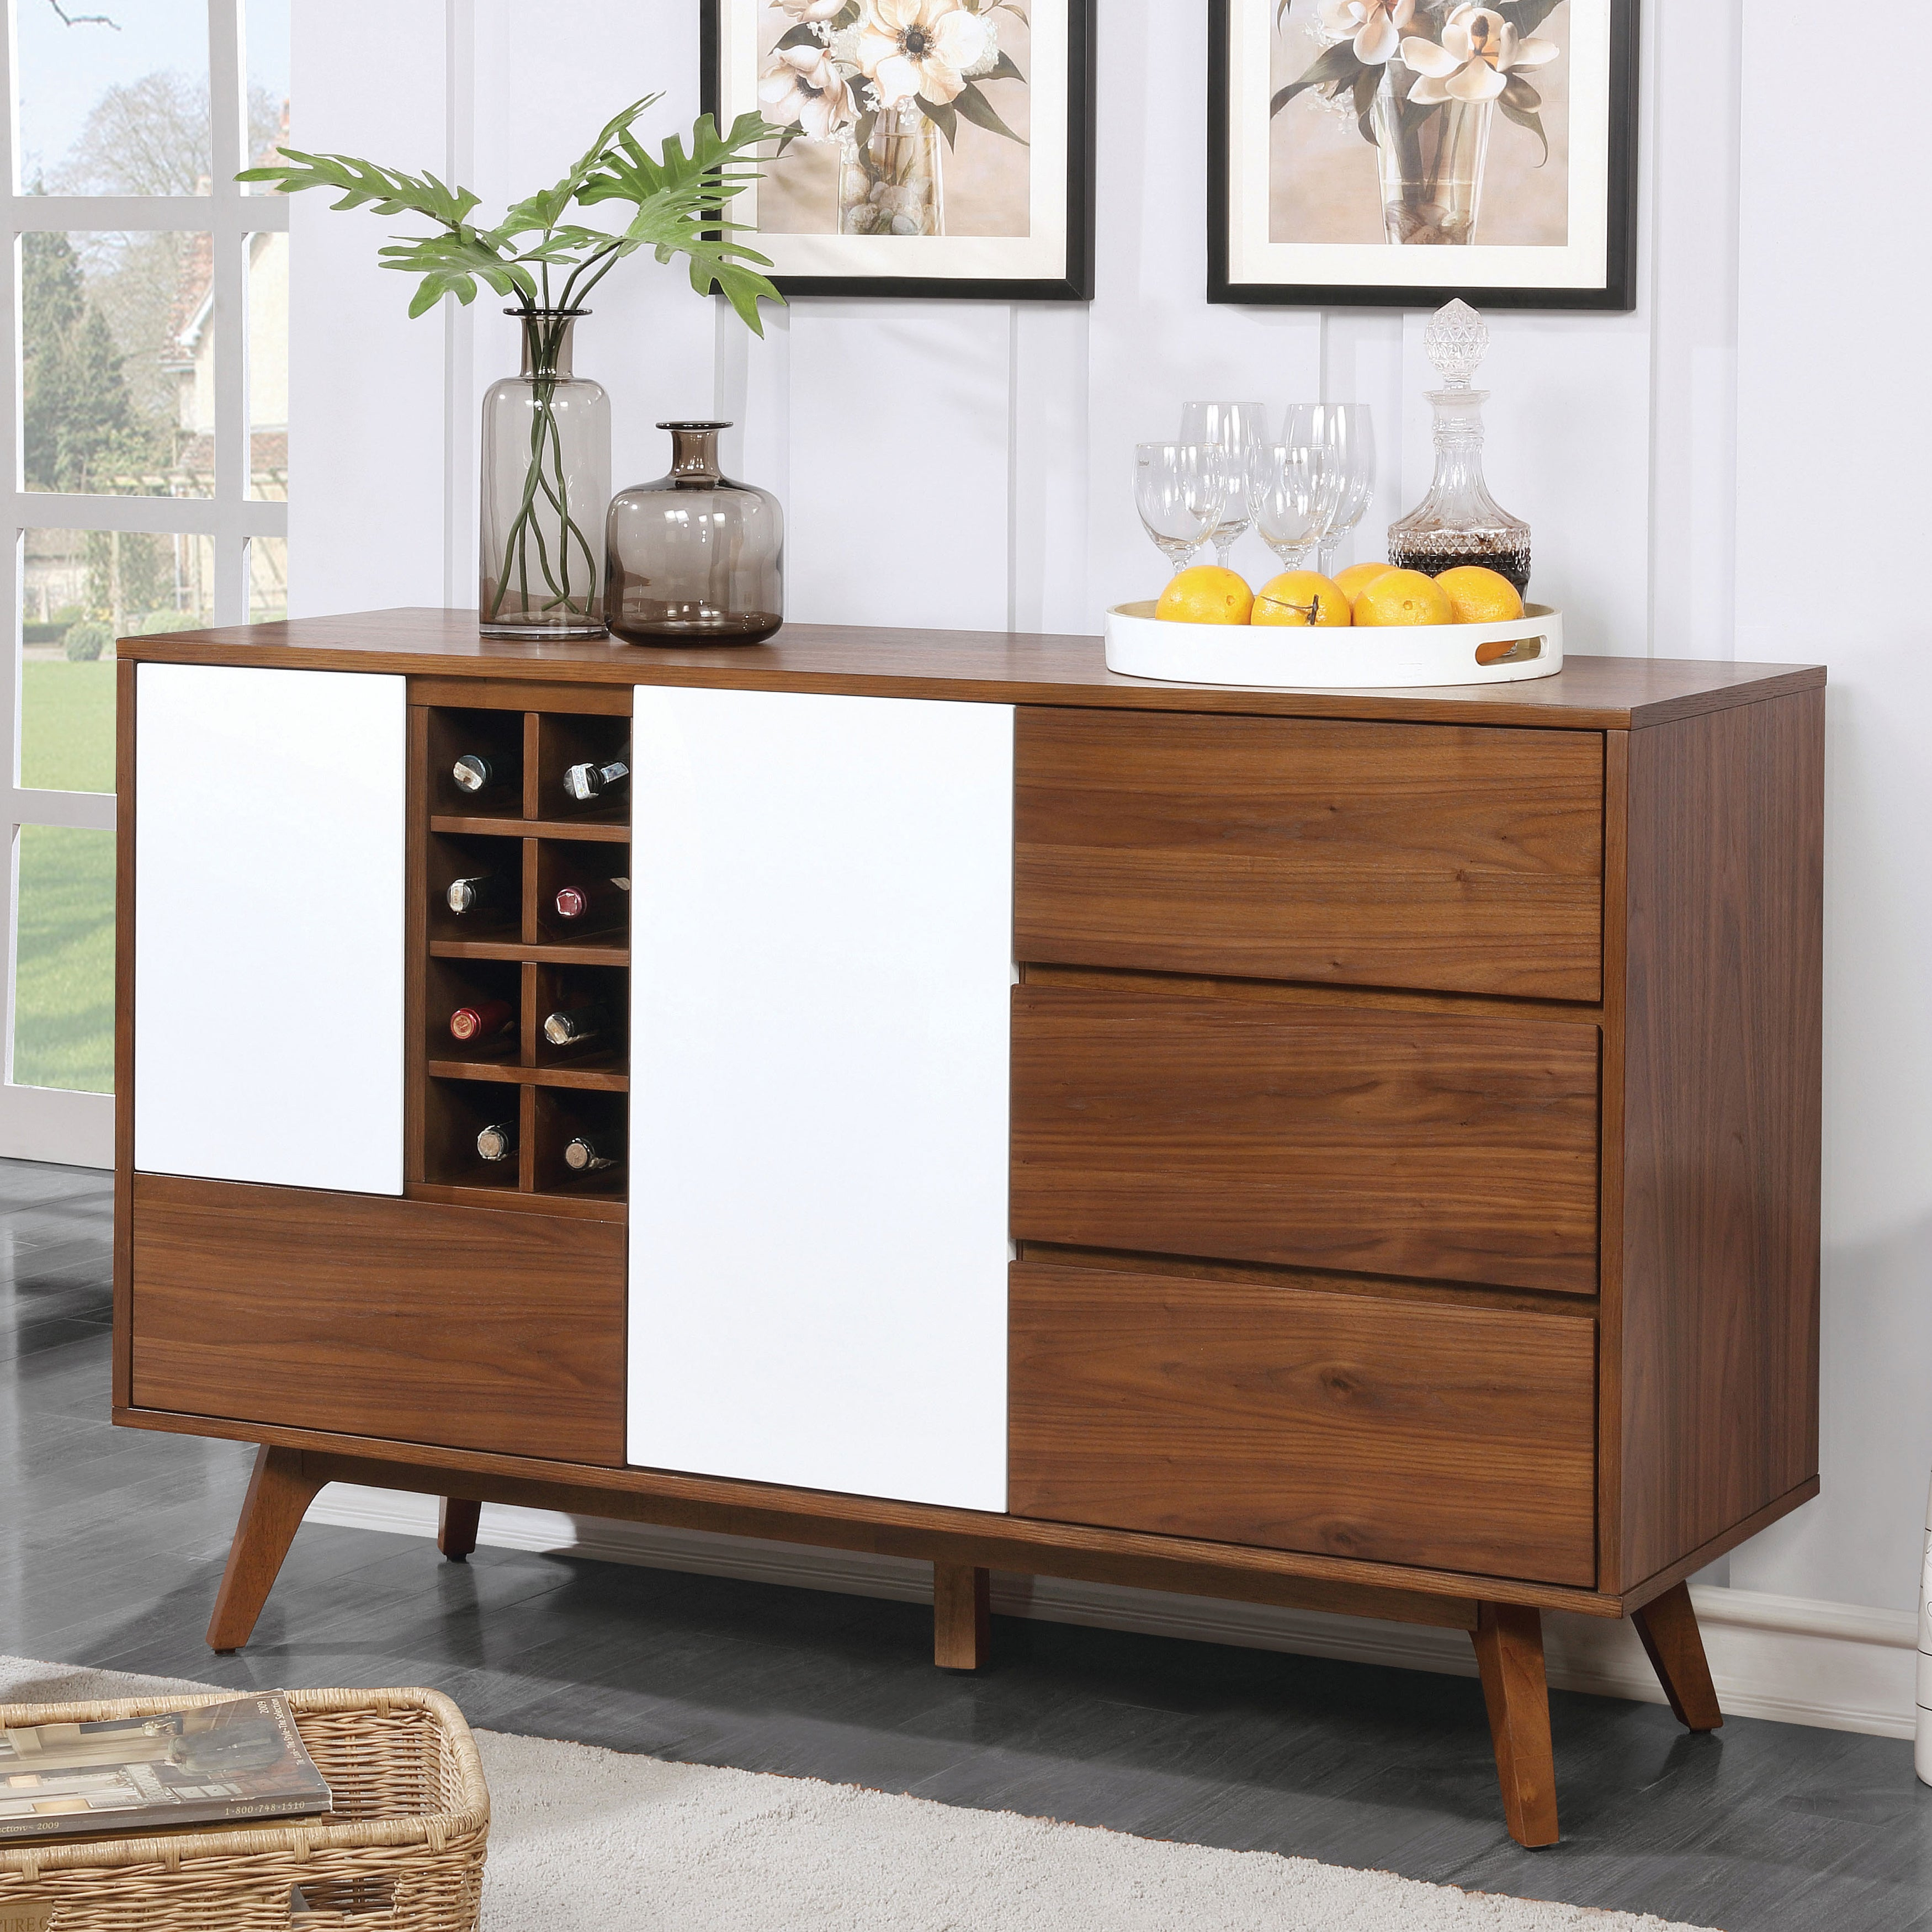 Furniture Of America Liman Mid Century Modern 2 Tone Oak/white Multi Storage Buffet/wine Cabinet Within Contemporary Style Wooden Buffets With Two Side Door Storage Cabinets (View 13 of 30)